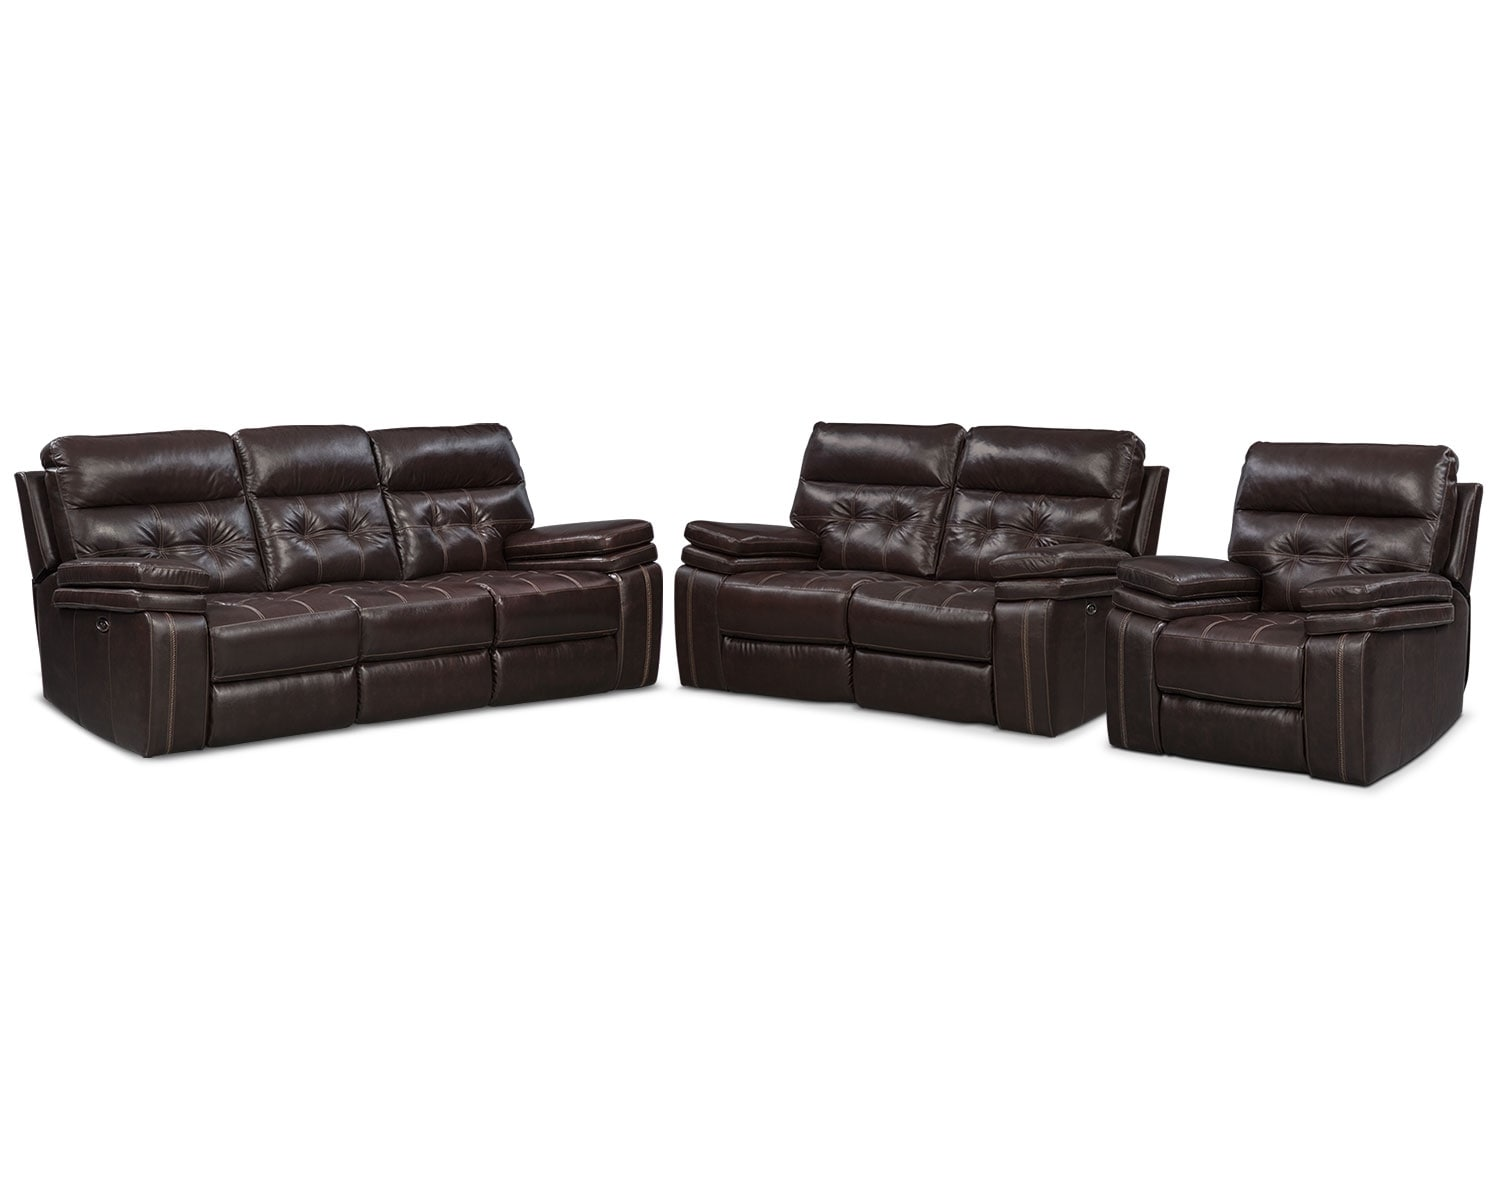 The Brisco Power Reclining Collection - Brown